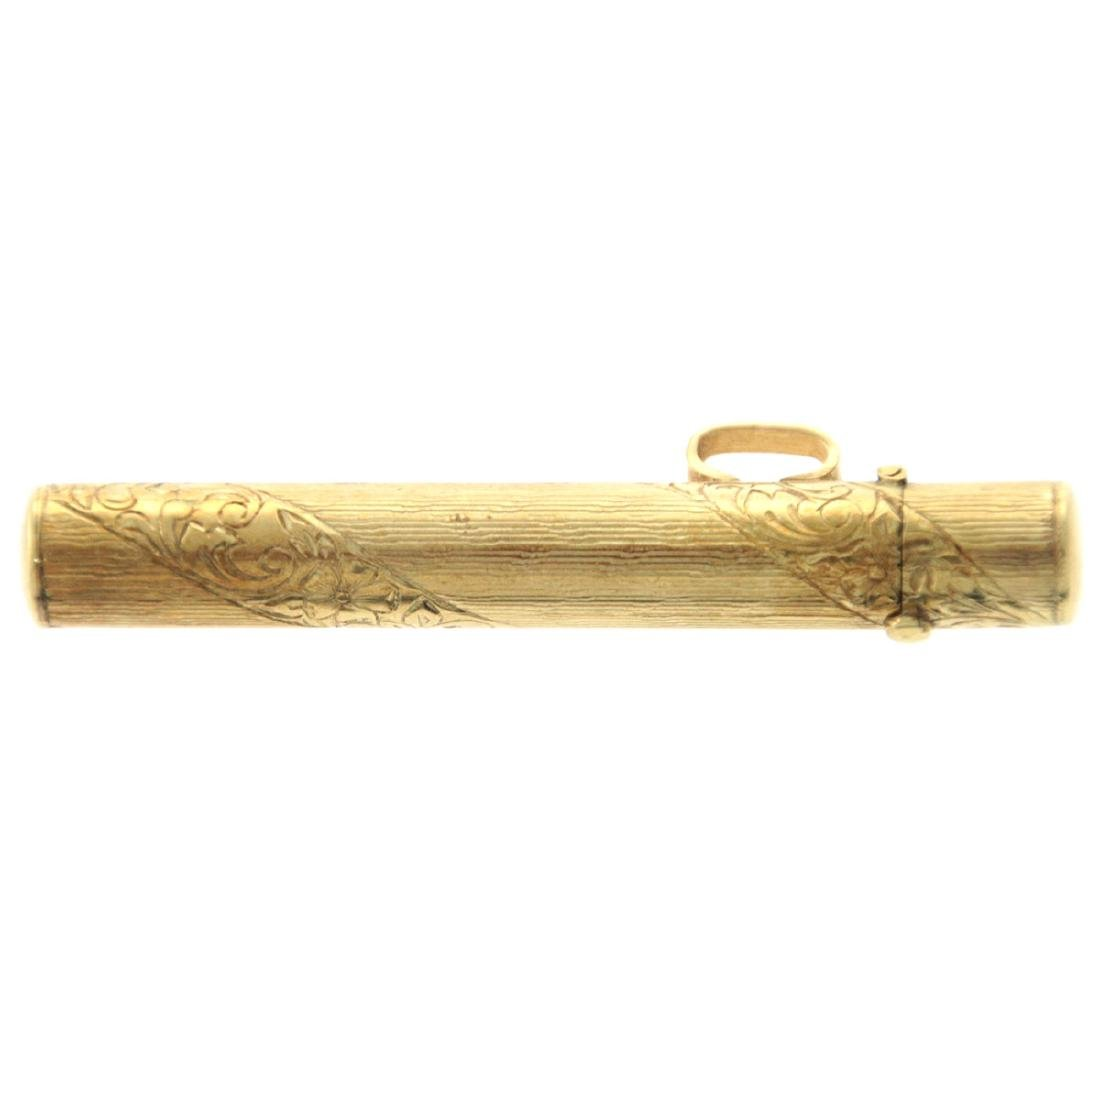 14k Yellow Gold Mezuzah Case Pendant. - 2